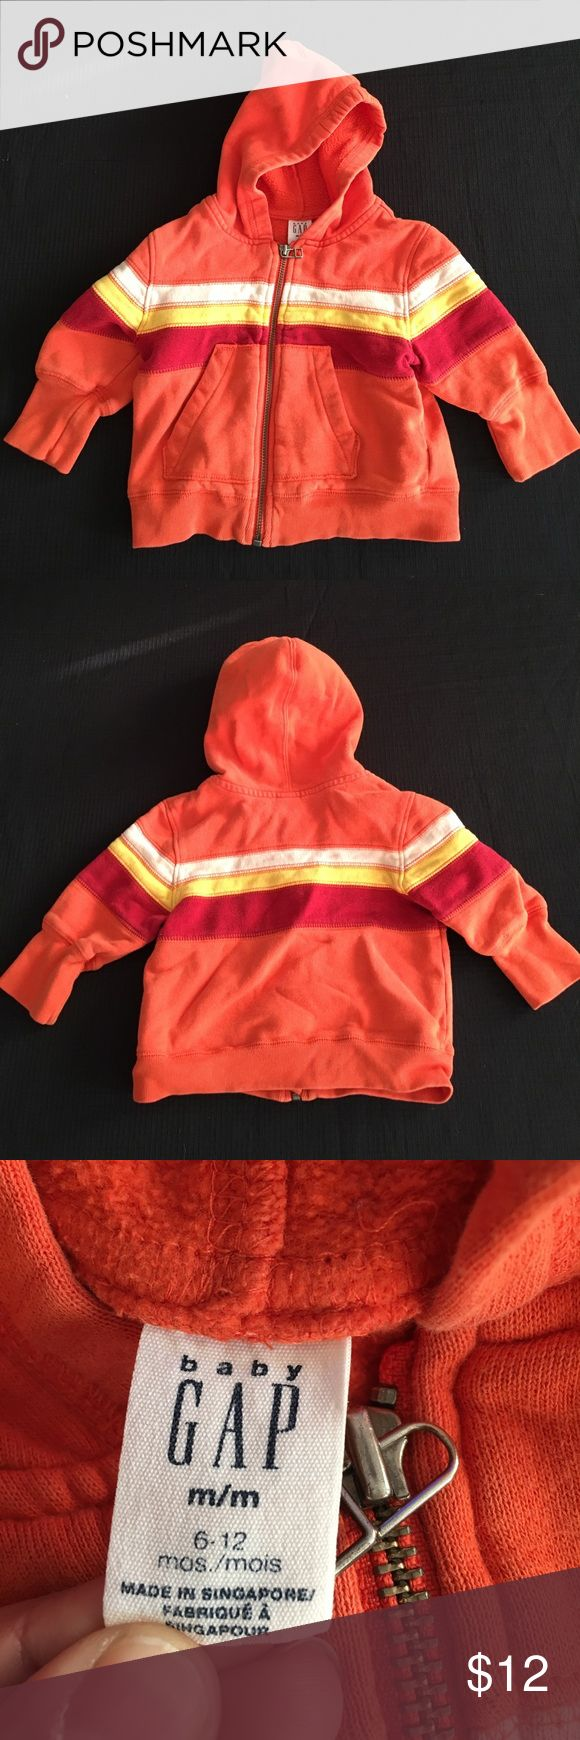 Baby Gap Orange Zip Up Hoodie 6-12 Months Baby Gap Orange Zip Up Hoodie. Has a front pockets. Orange with white, yellow and red stripes. 6-12 months. Gently used.  Bundle 221. GAP Shirts & Tops Sweatshirts & Hoodies